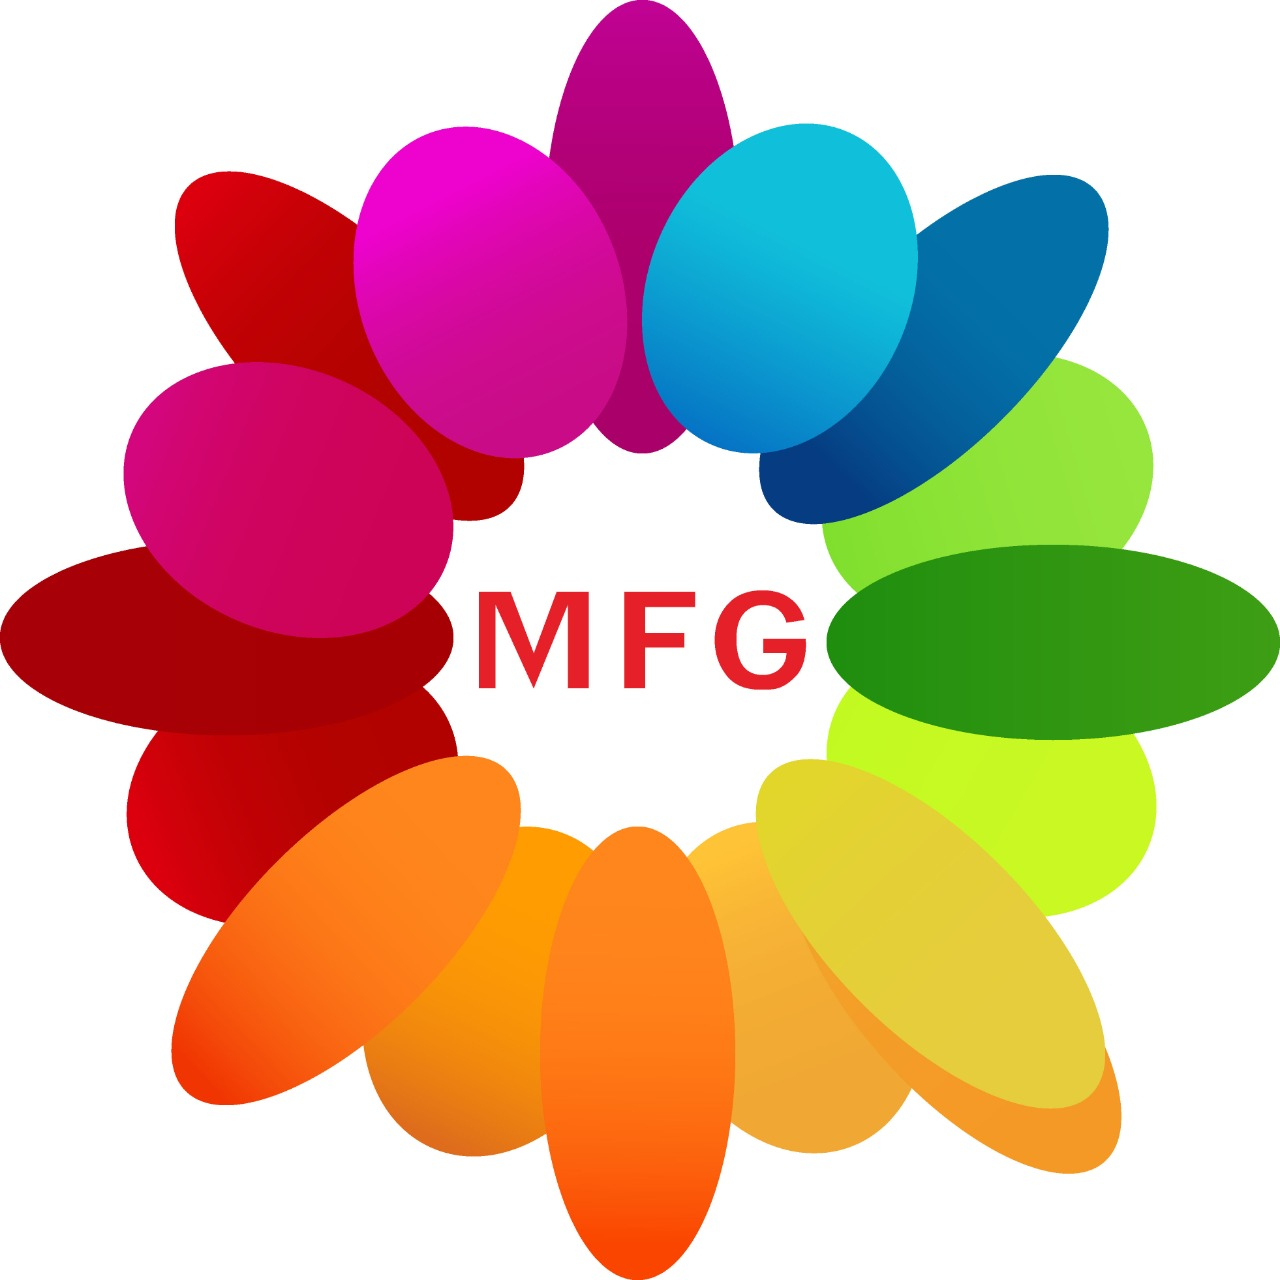 1 kg black forest cake with a cute 8 inches teddy bear with 3 pcs of